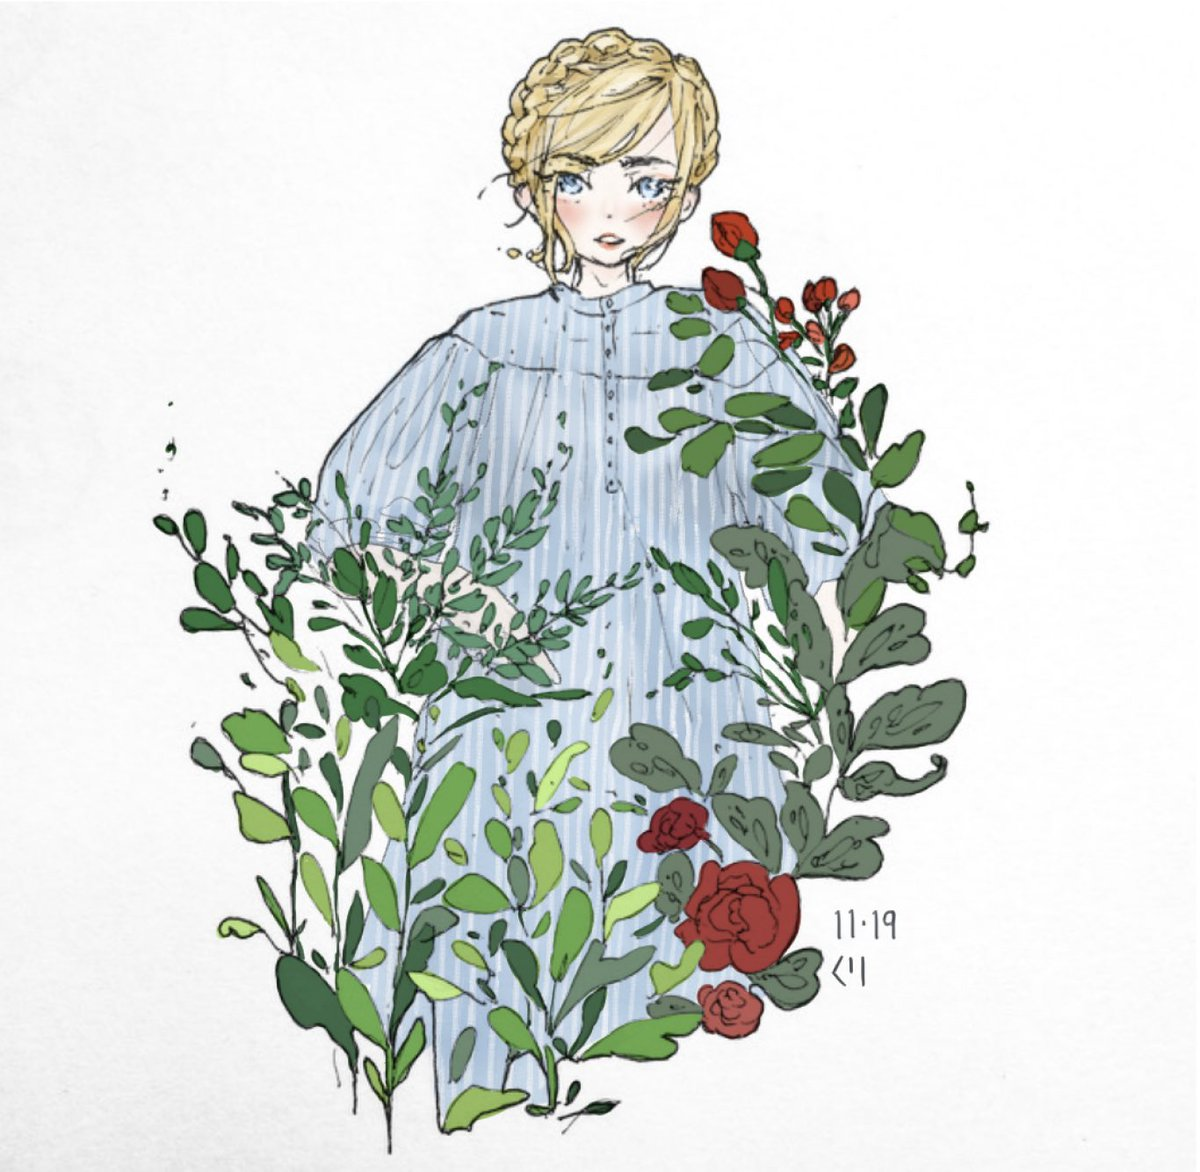 Hello On Twitter Colored Version I M Updating All My Other Social Media Before My Main Instagram This Time Lol Art Aesthetic Plant Plants Aestheticart Flowers Plantaesthetic Animeart Drawing Artist Comic Doodle Https T Co Tbmouvmqba